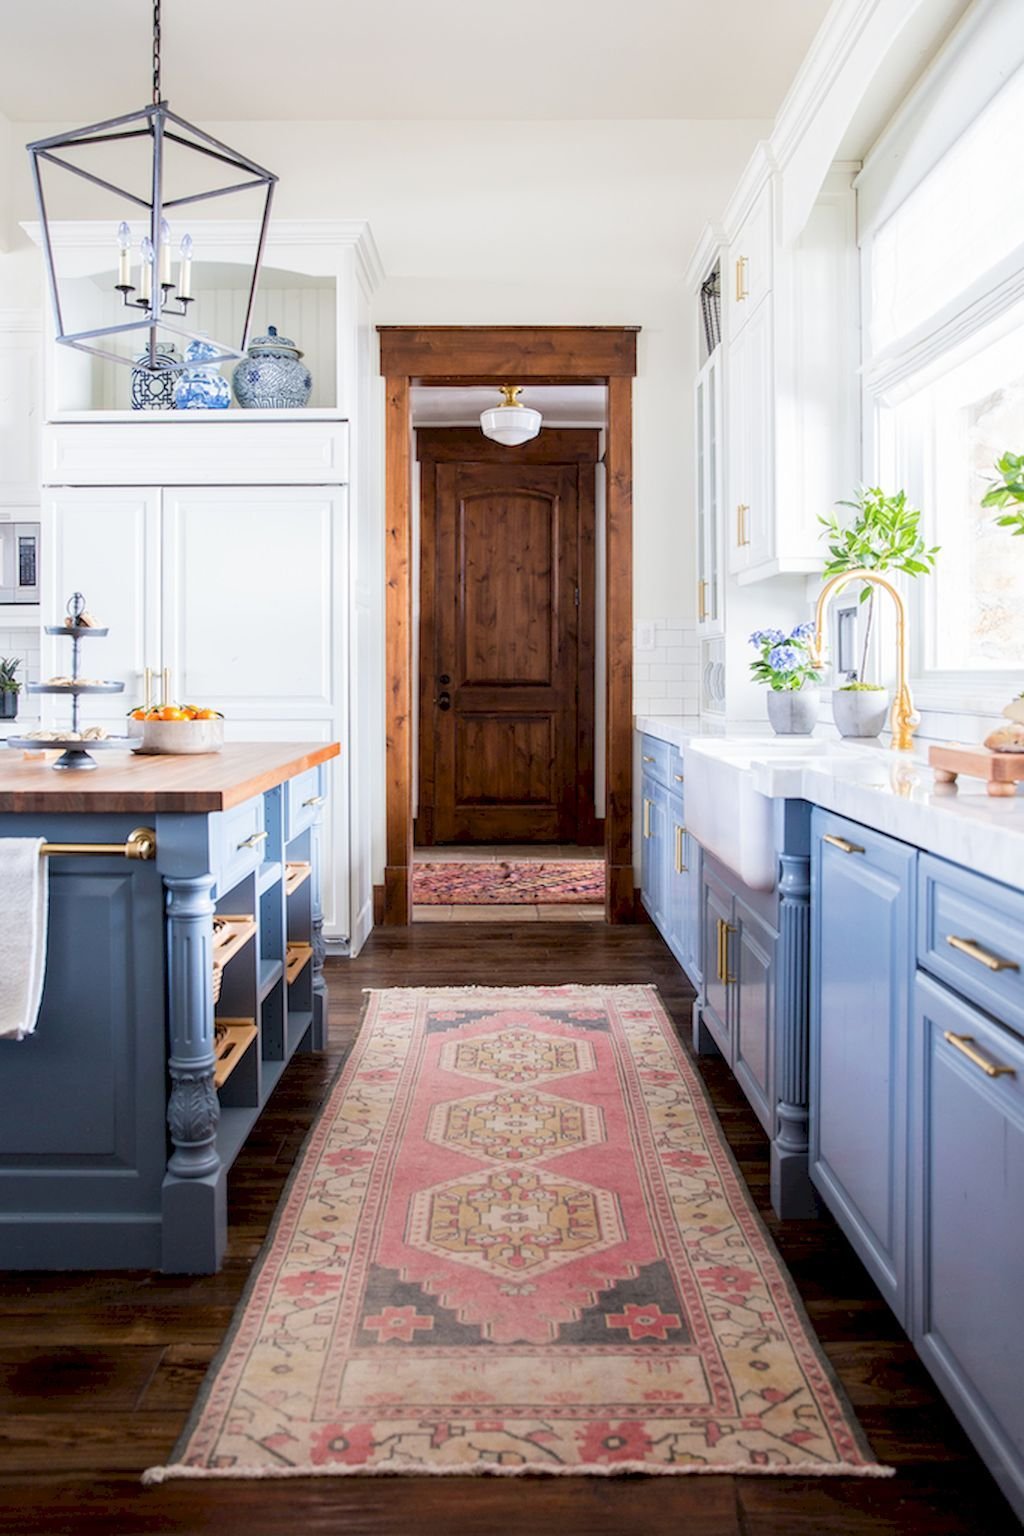 40 Beautiful Farmhouse Kitchen Makeover Ideas on A Budget